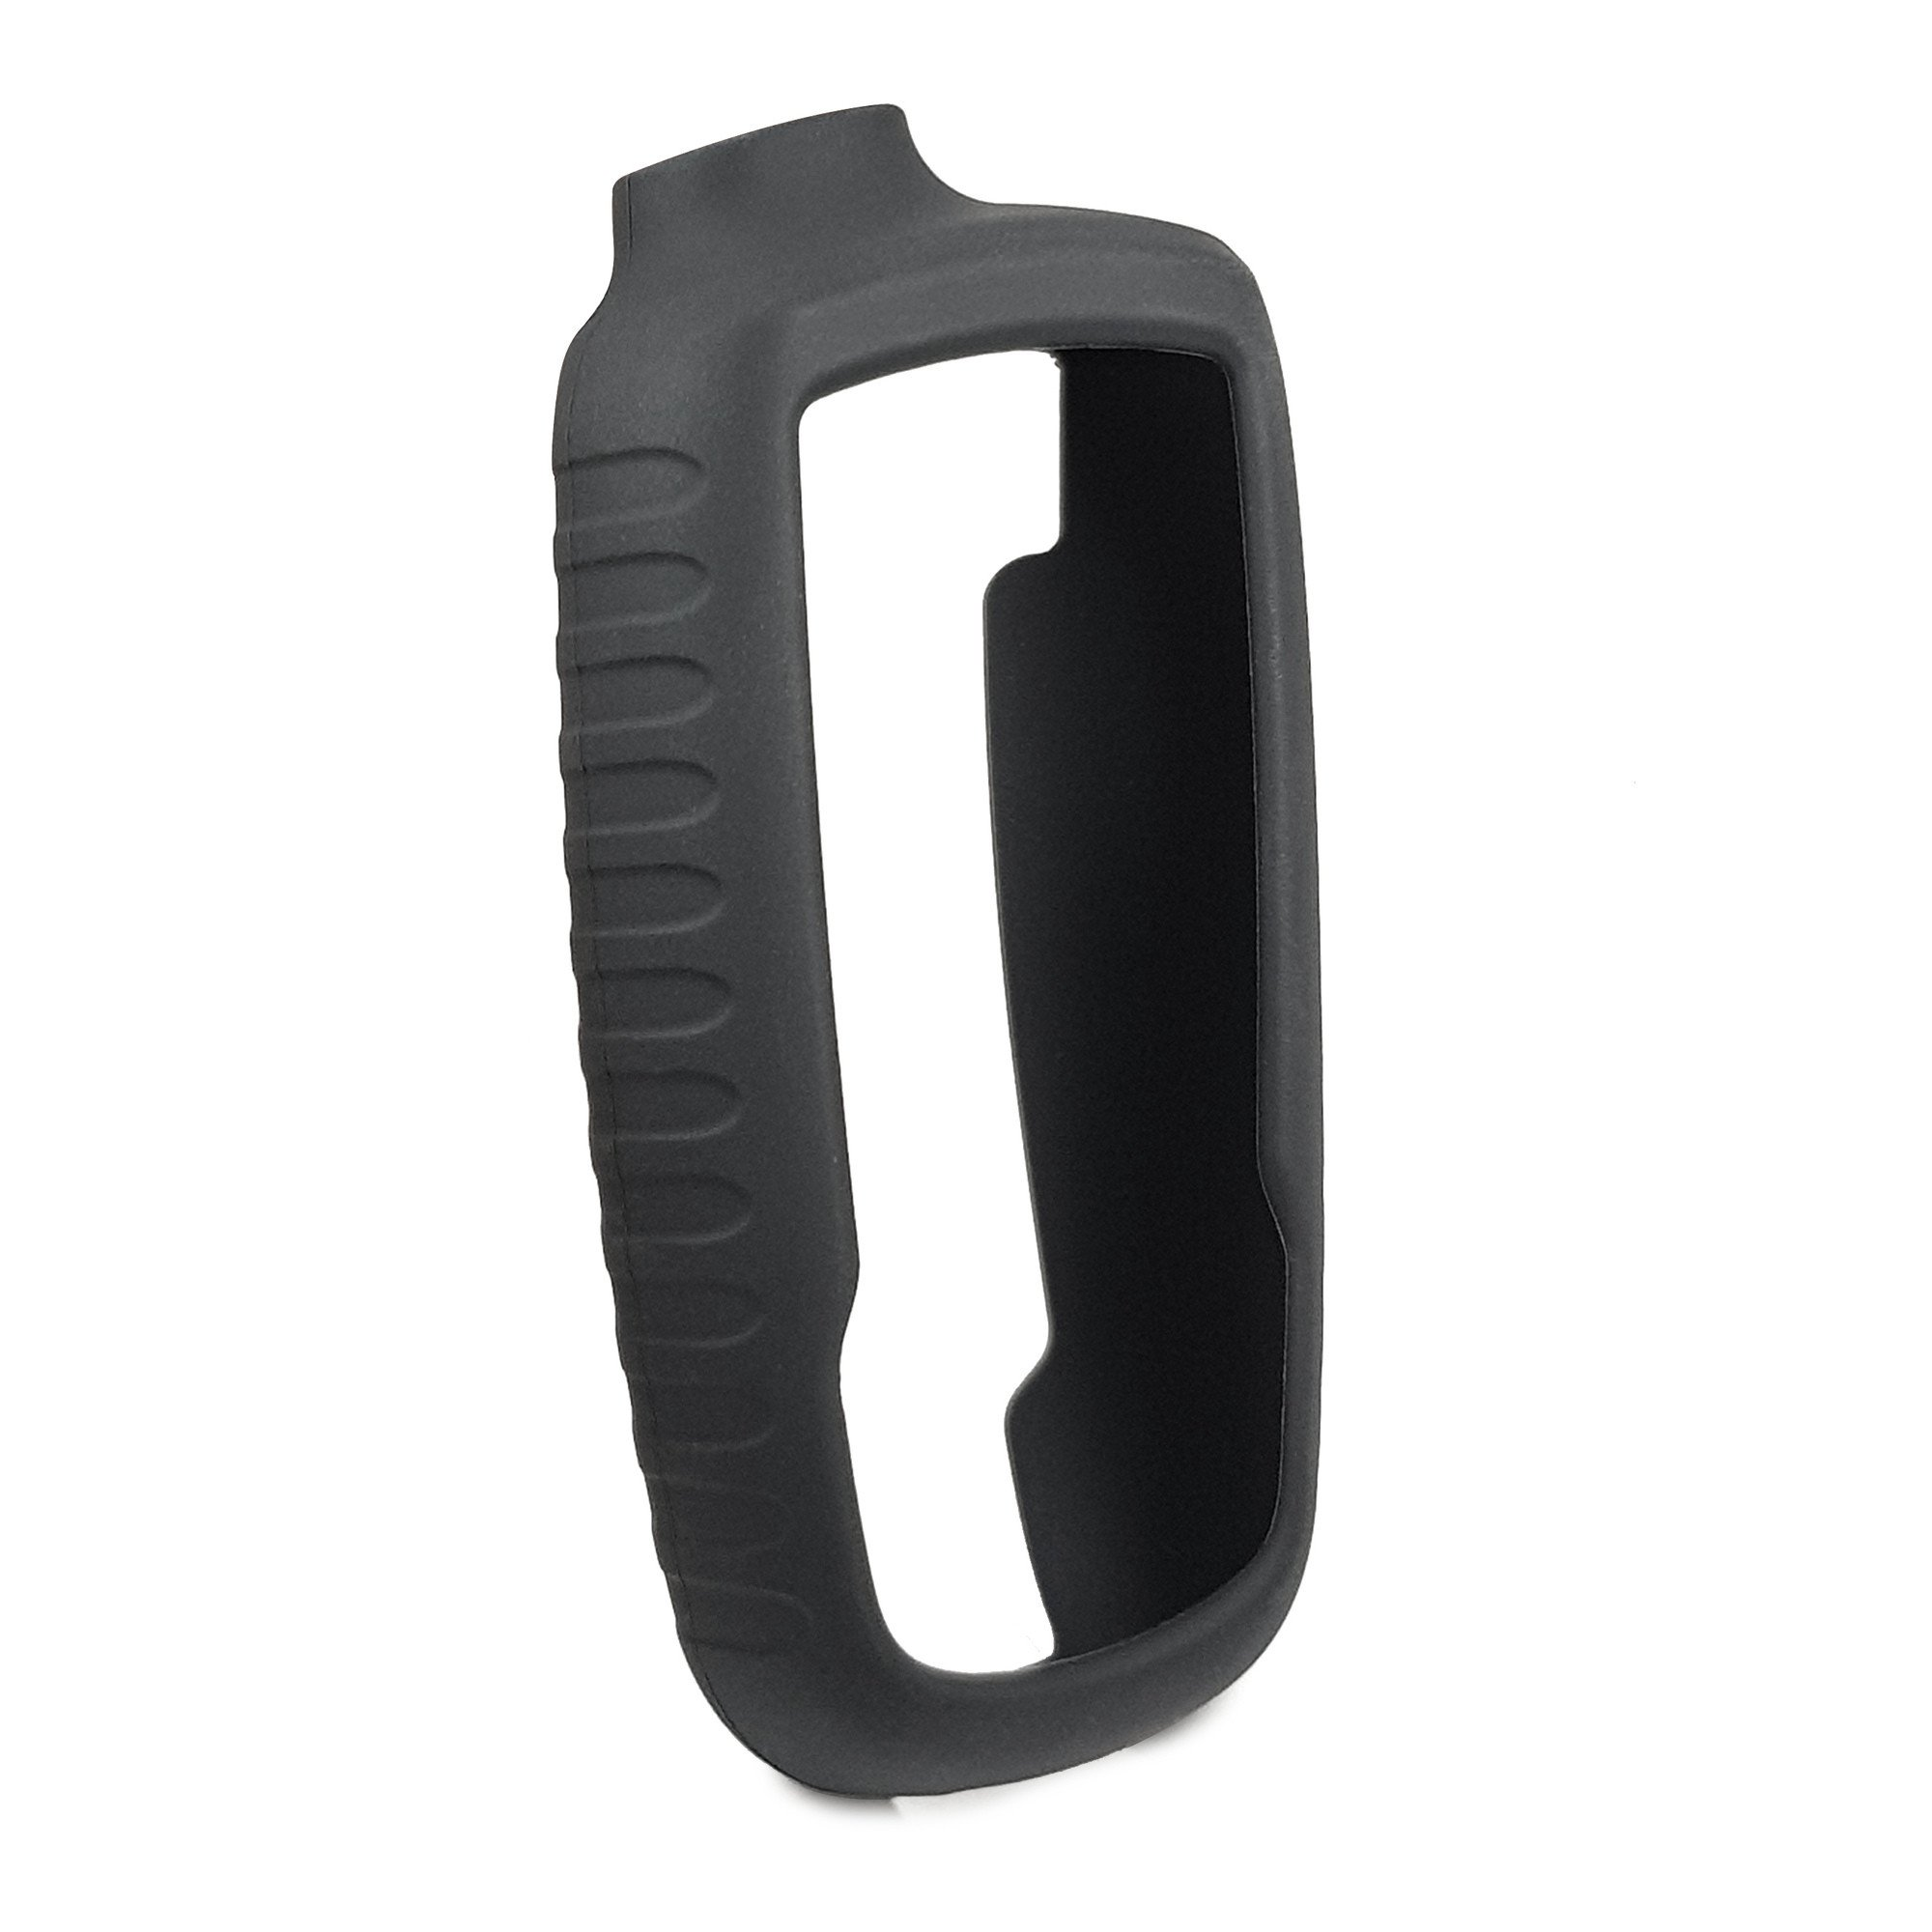 Tuff-luv Protective Silicone Gel Skin Case Cover for Garmin GPS Map 62 62s 62st 62sc 62stc 64 - Black